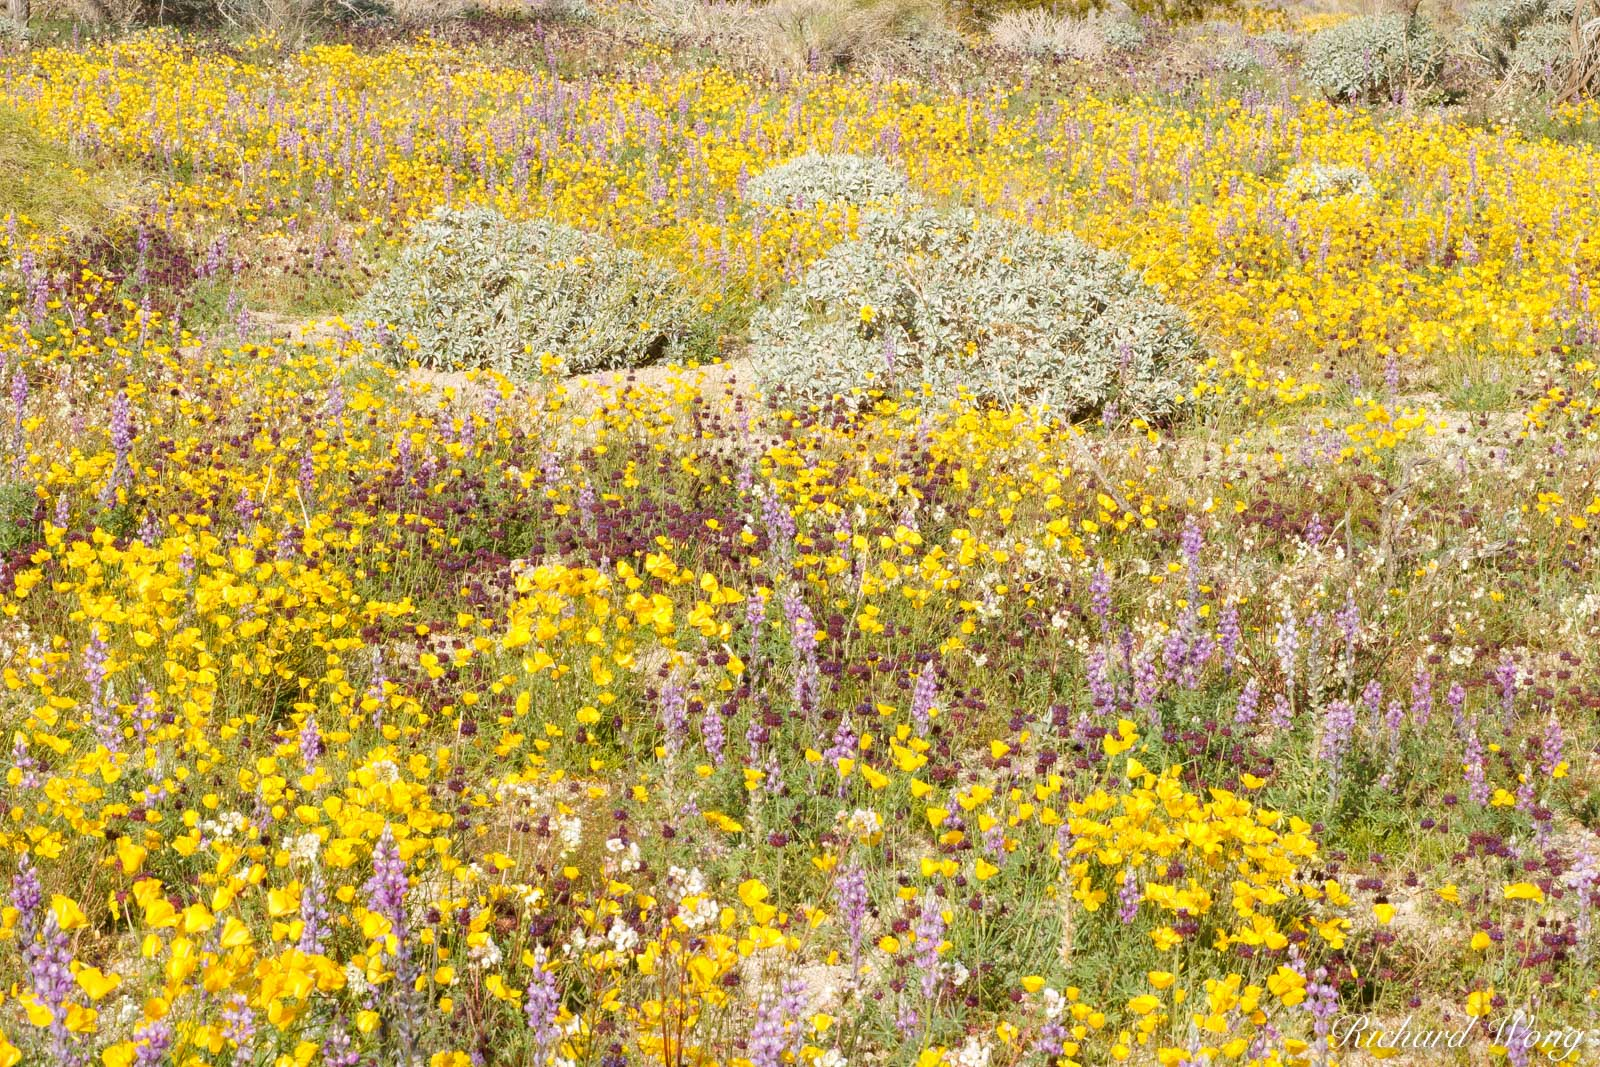 Golden Poppies and Lupine Spring Wildflowers, Joshua Tree National Park, California, photo, photo